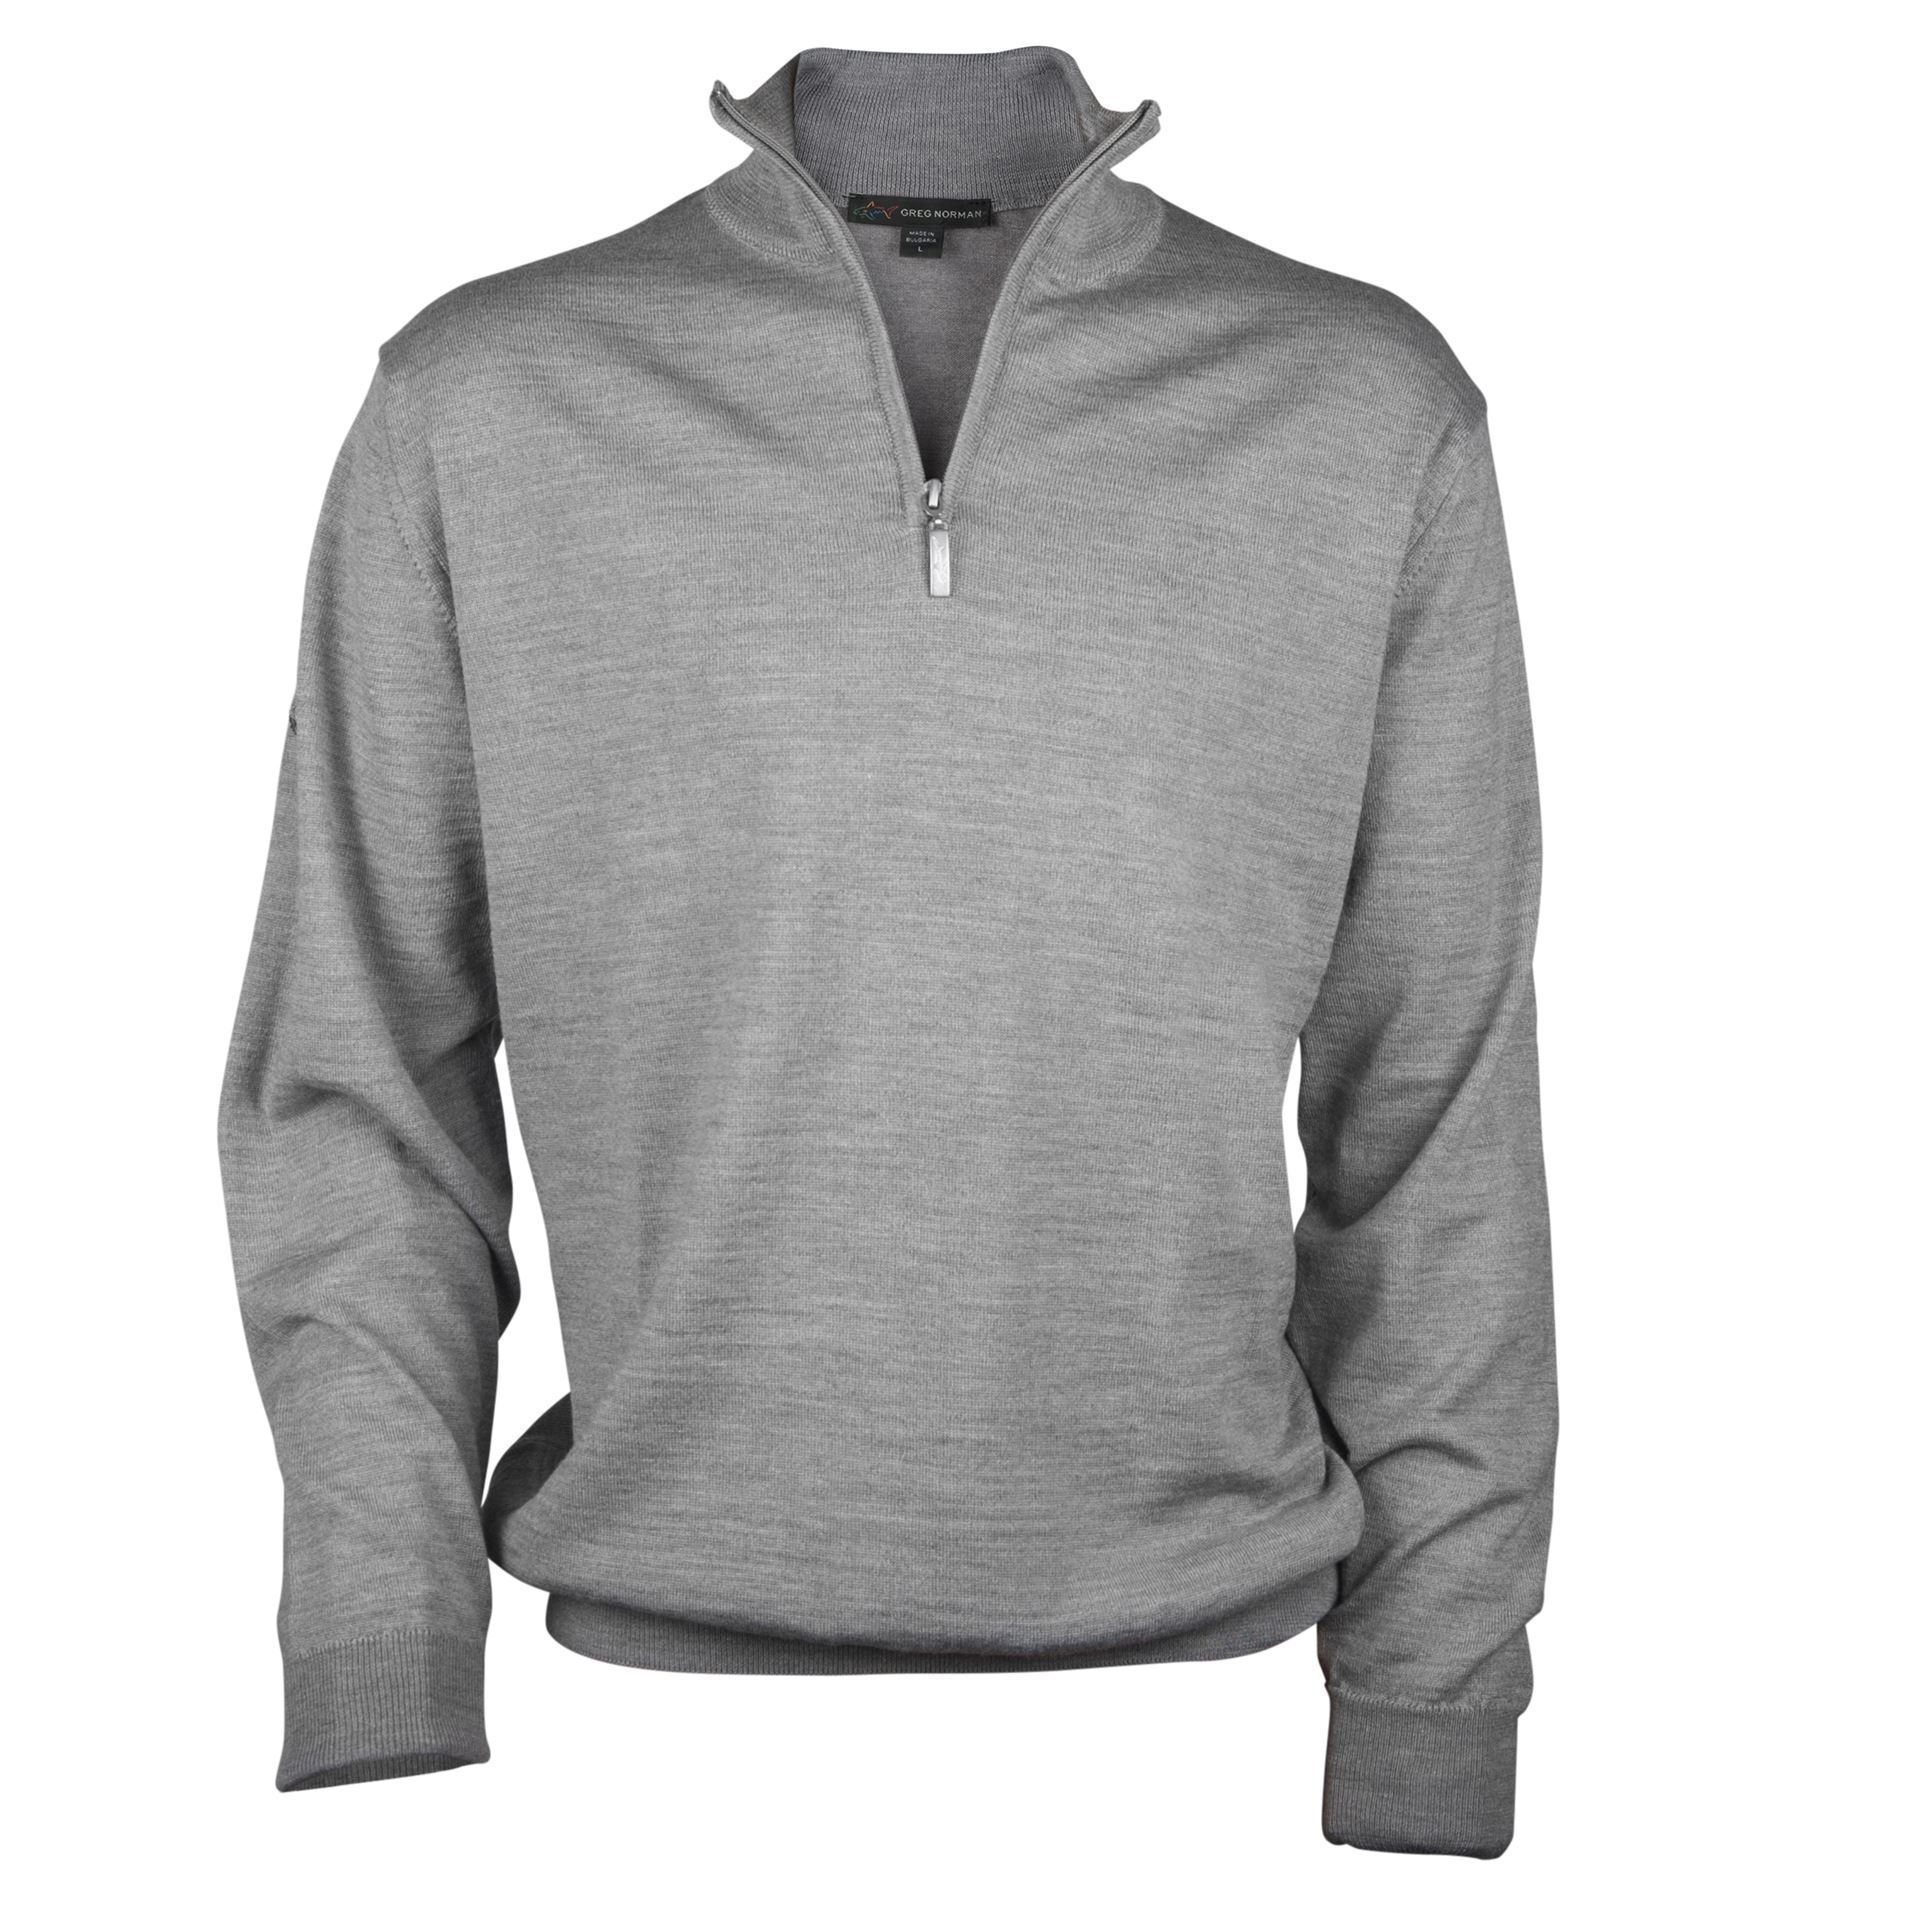 1e34d5f78588 Greg Norman Merino Half Zip - Grey - Next Day Delivery Golf Equipment